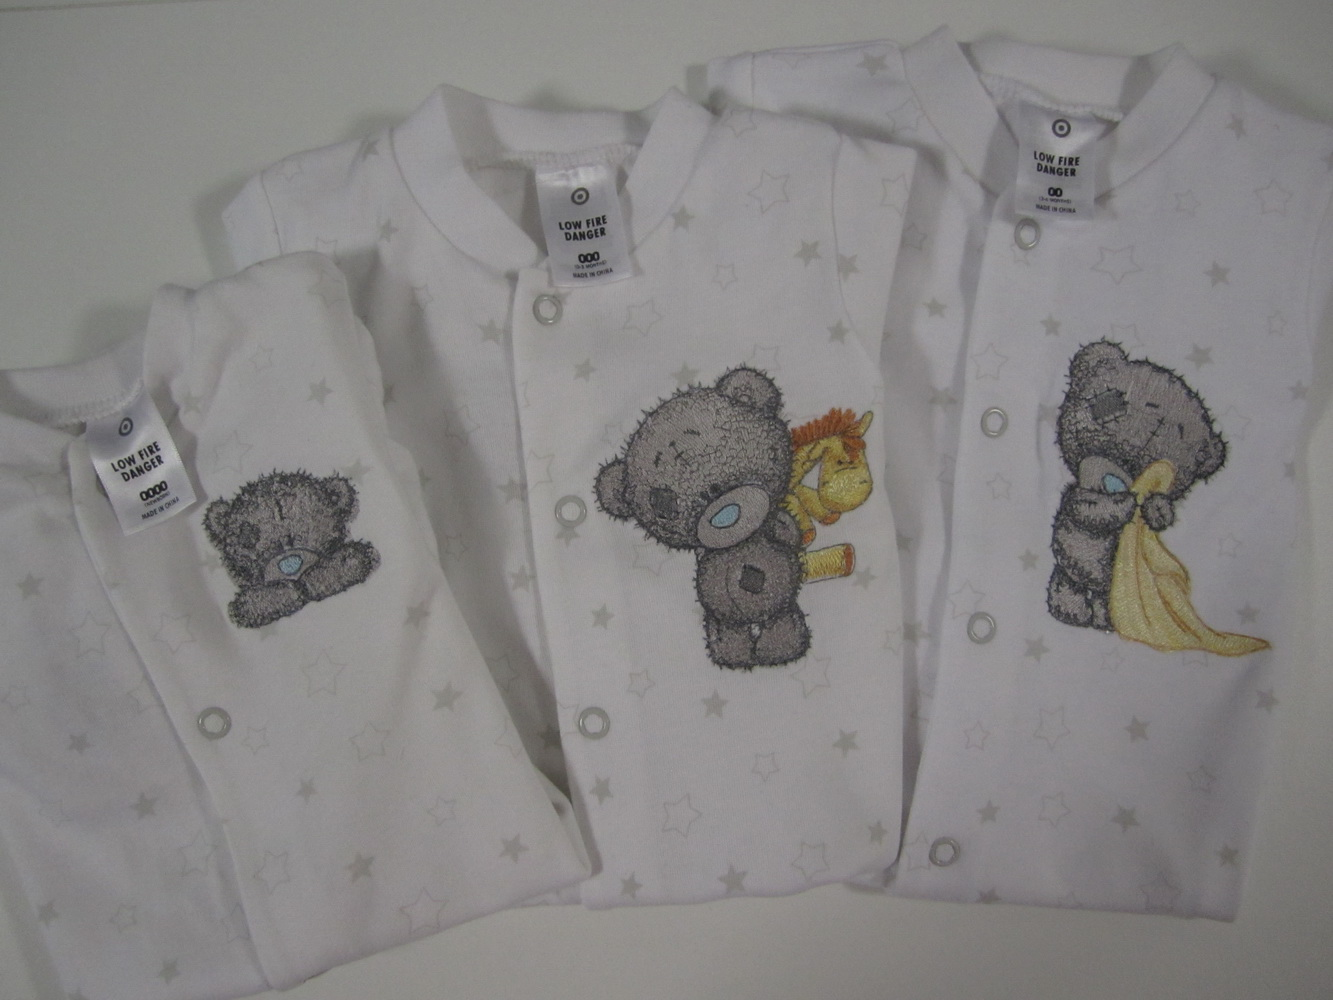 Teddy bear machine embroidery designs on baby wear